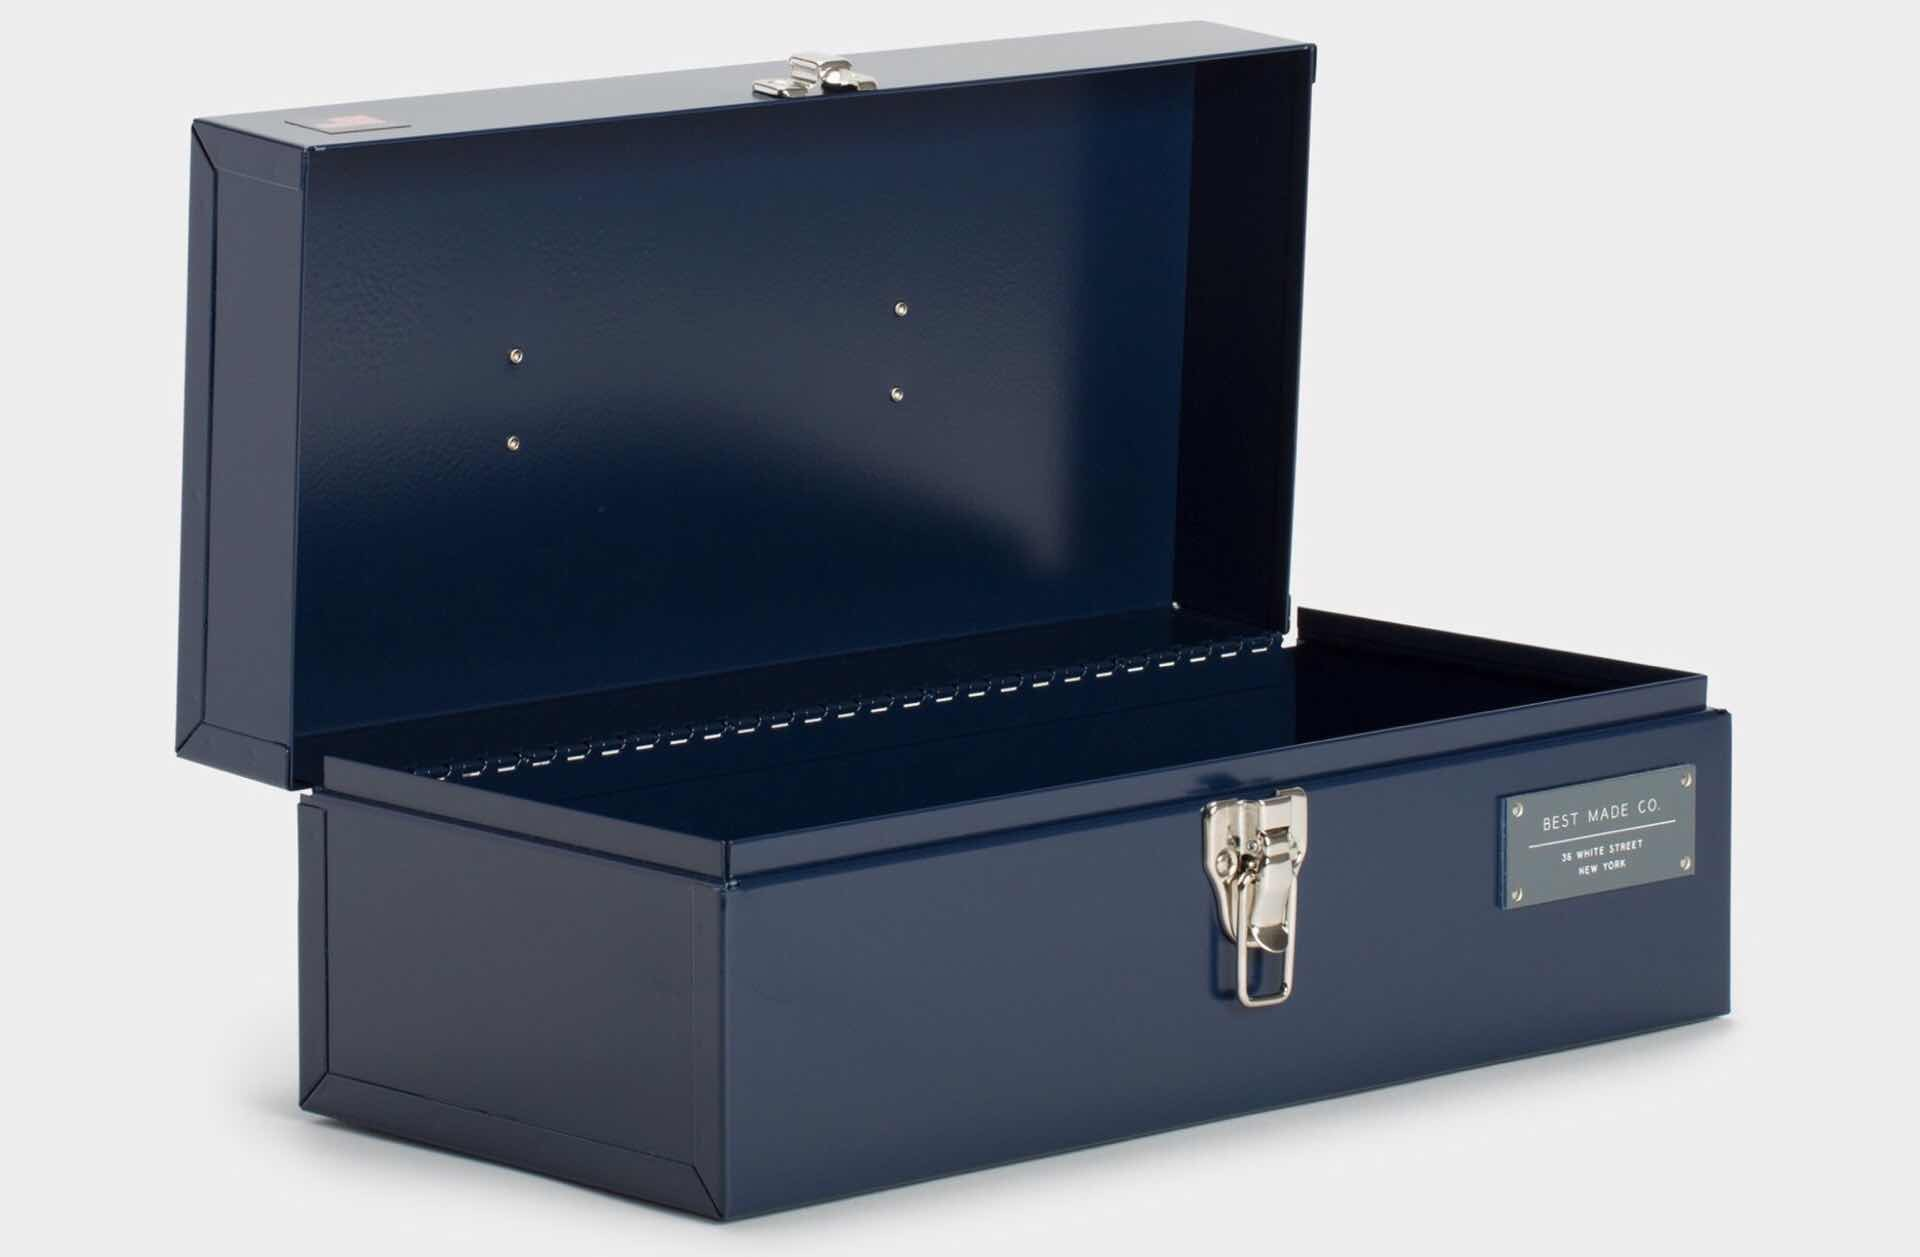 best-made-15-inch-toolbox-navy-blue